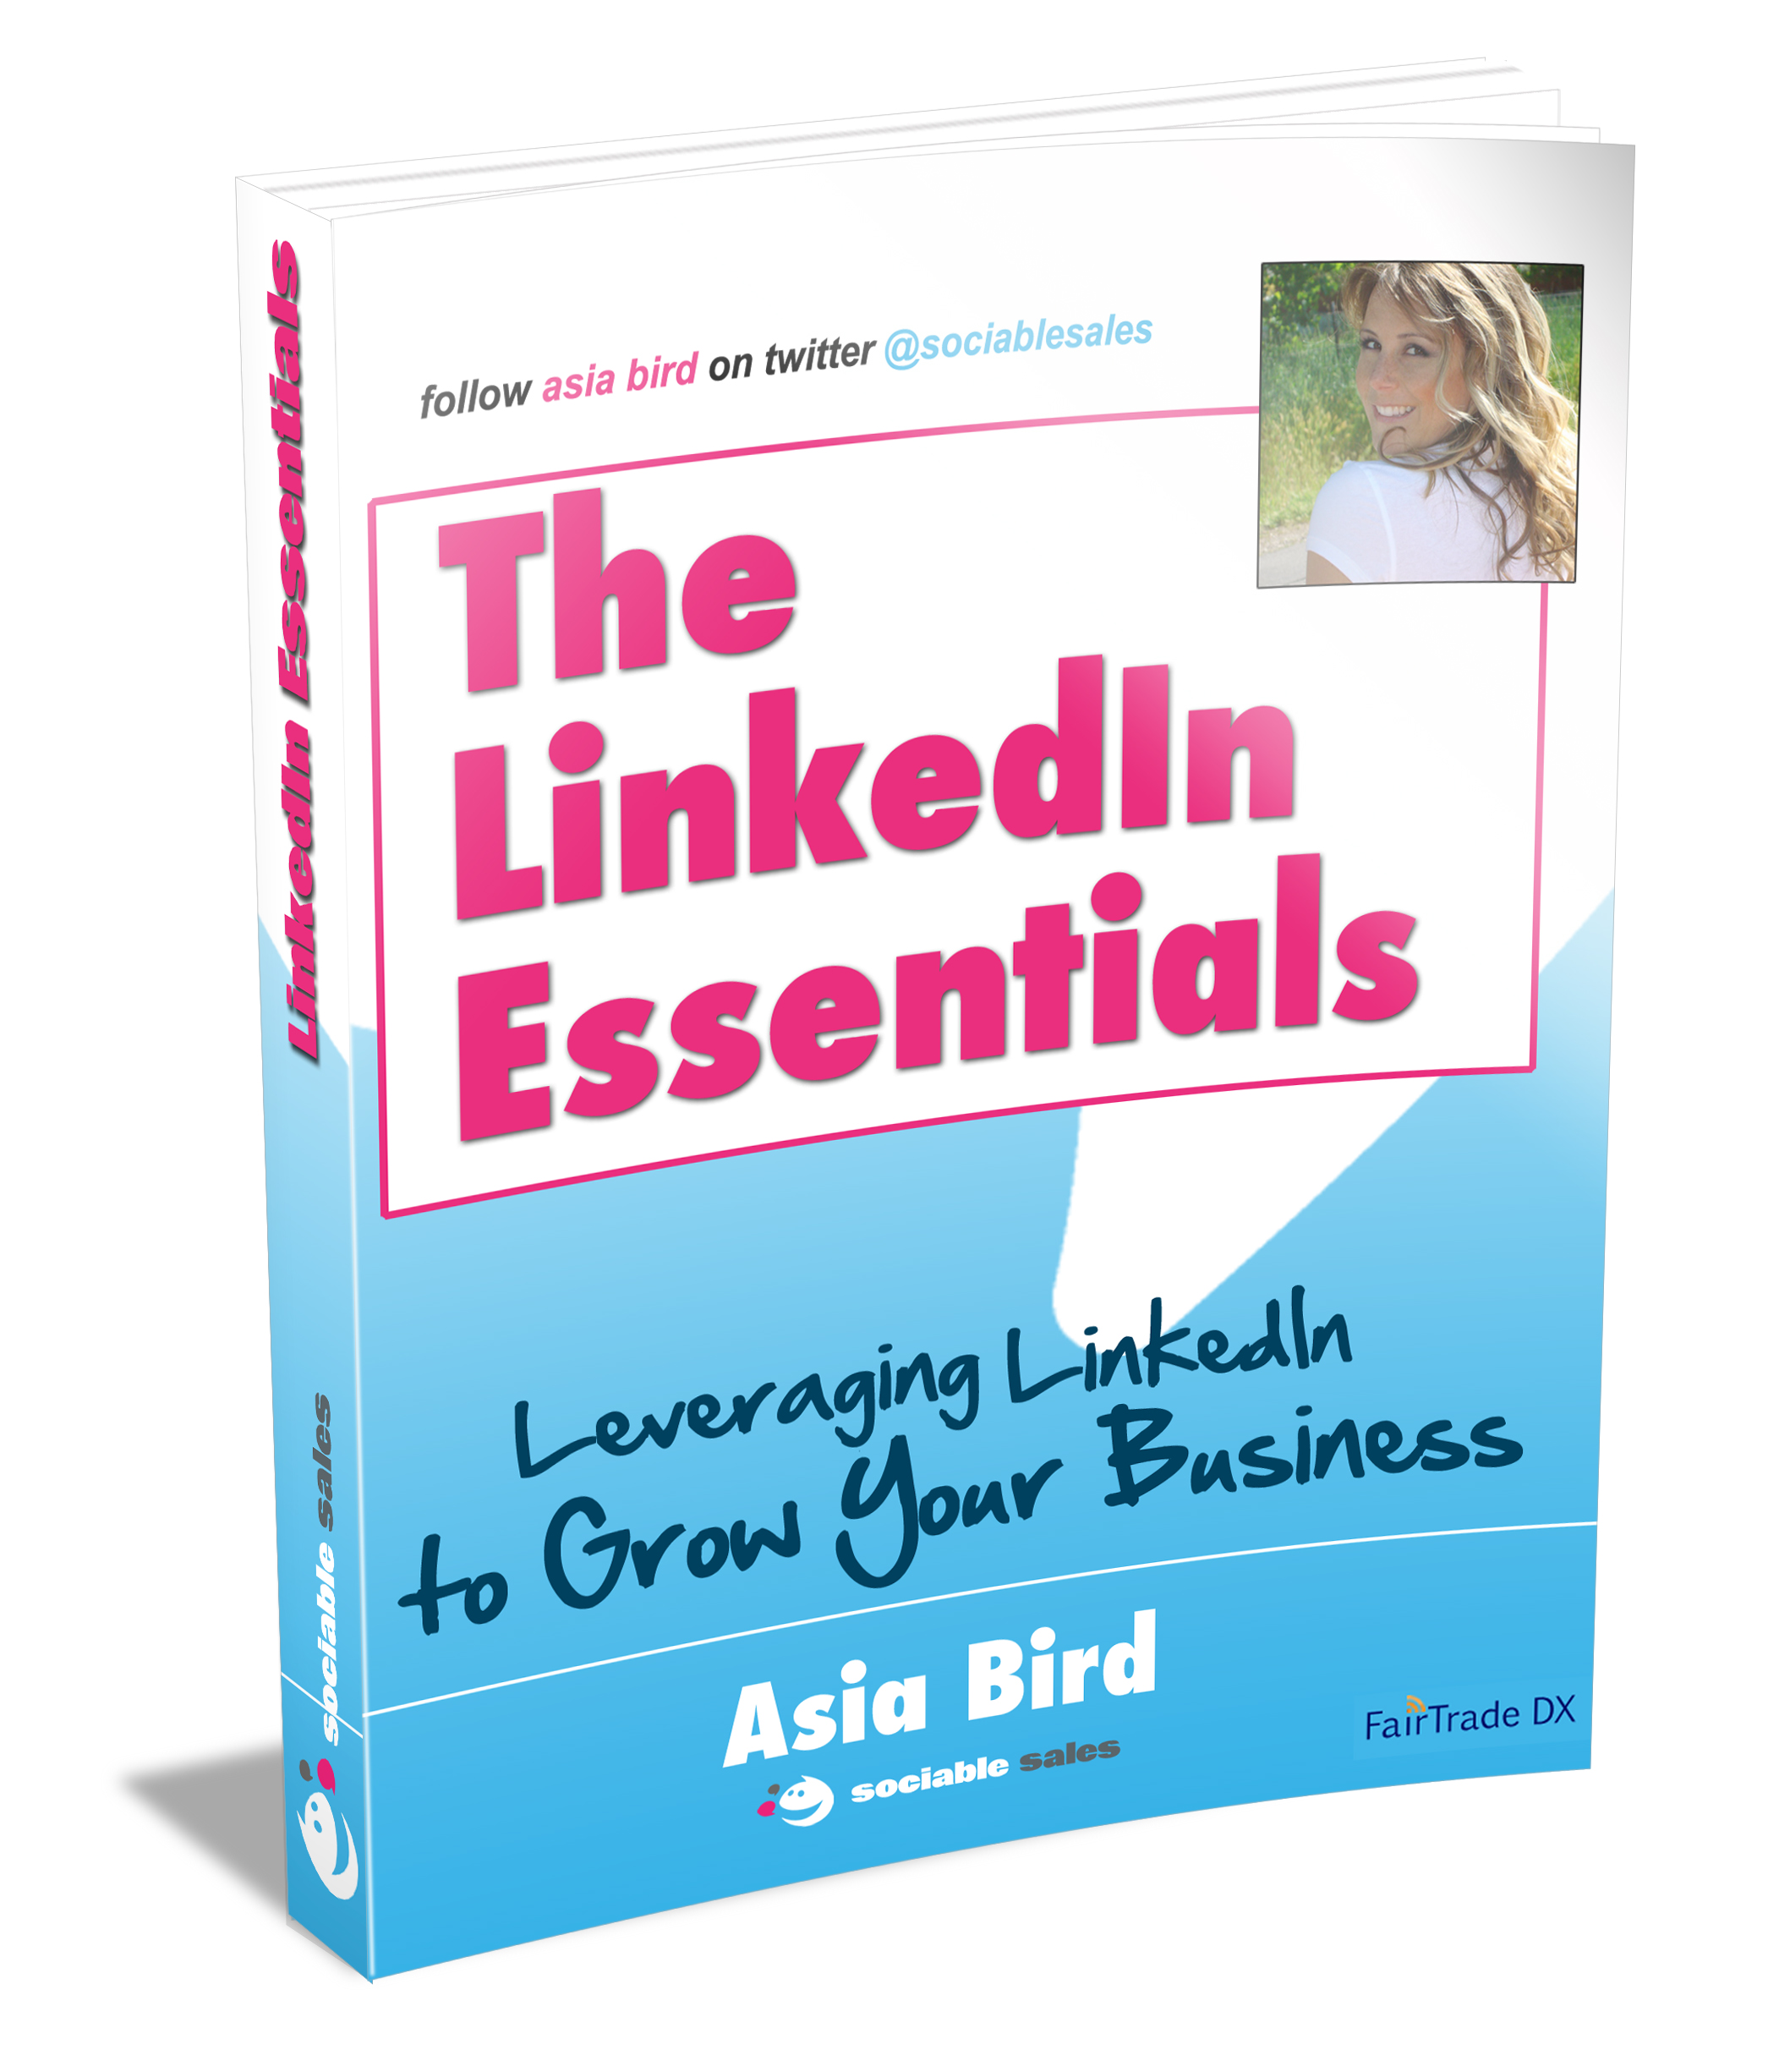 Asia Bird's The LinkedIn Essentials, now available at www.fairtradedx.com, Amazon, and BN.com.